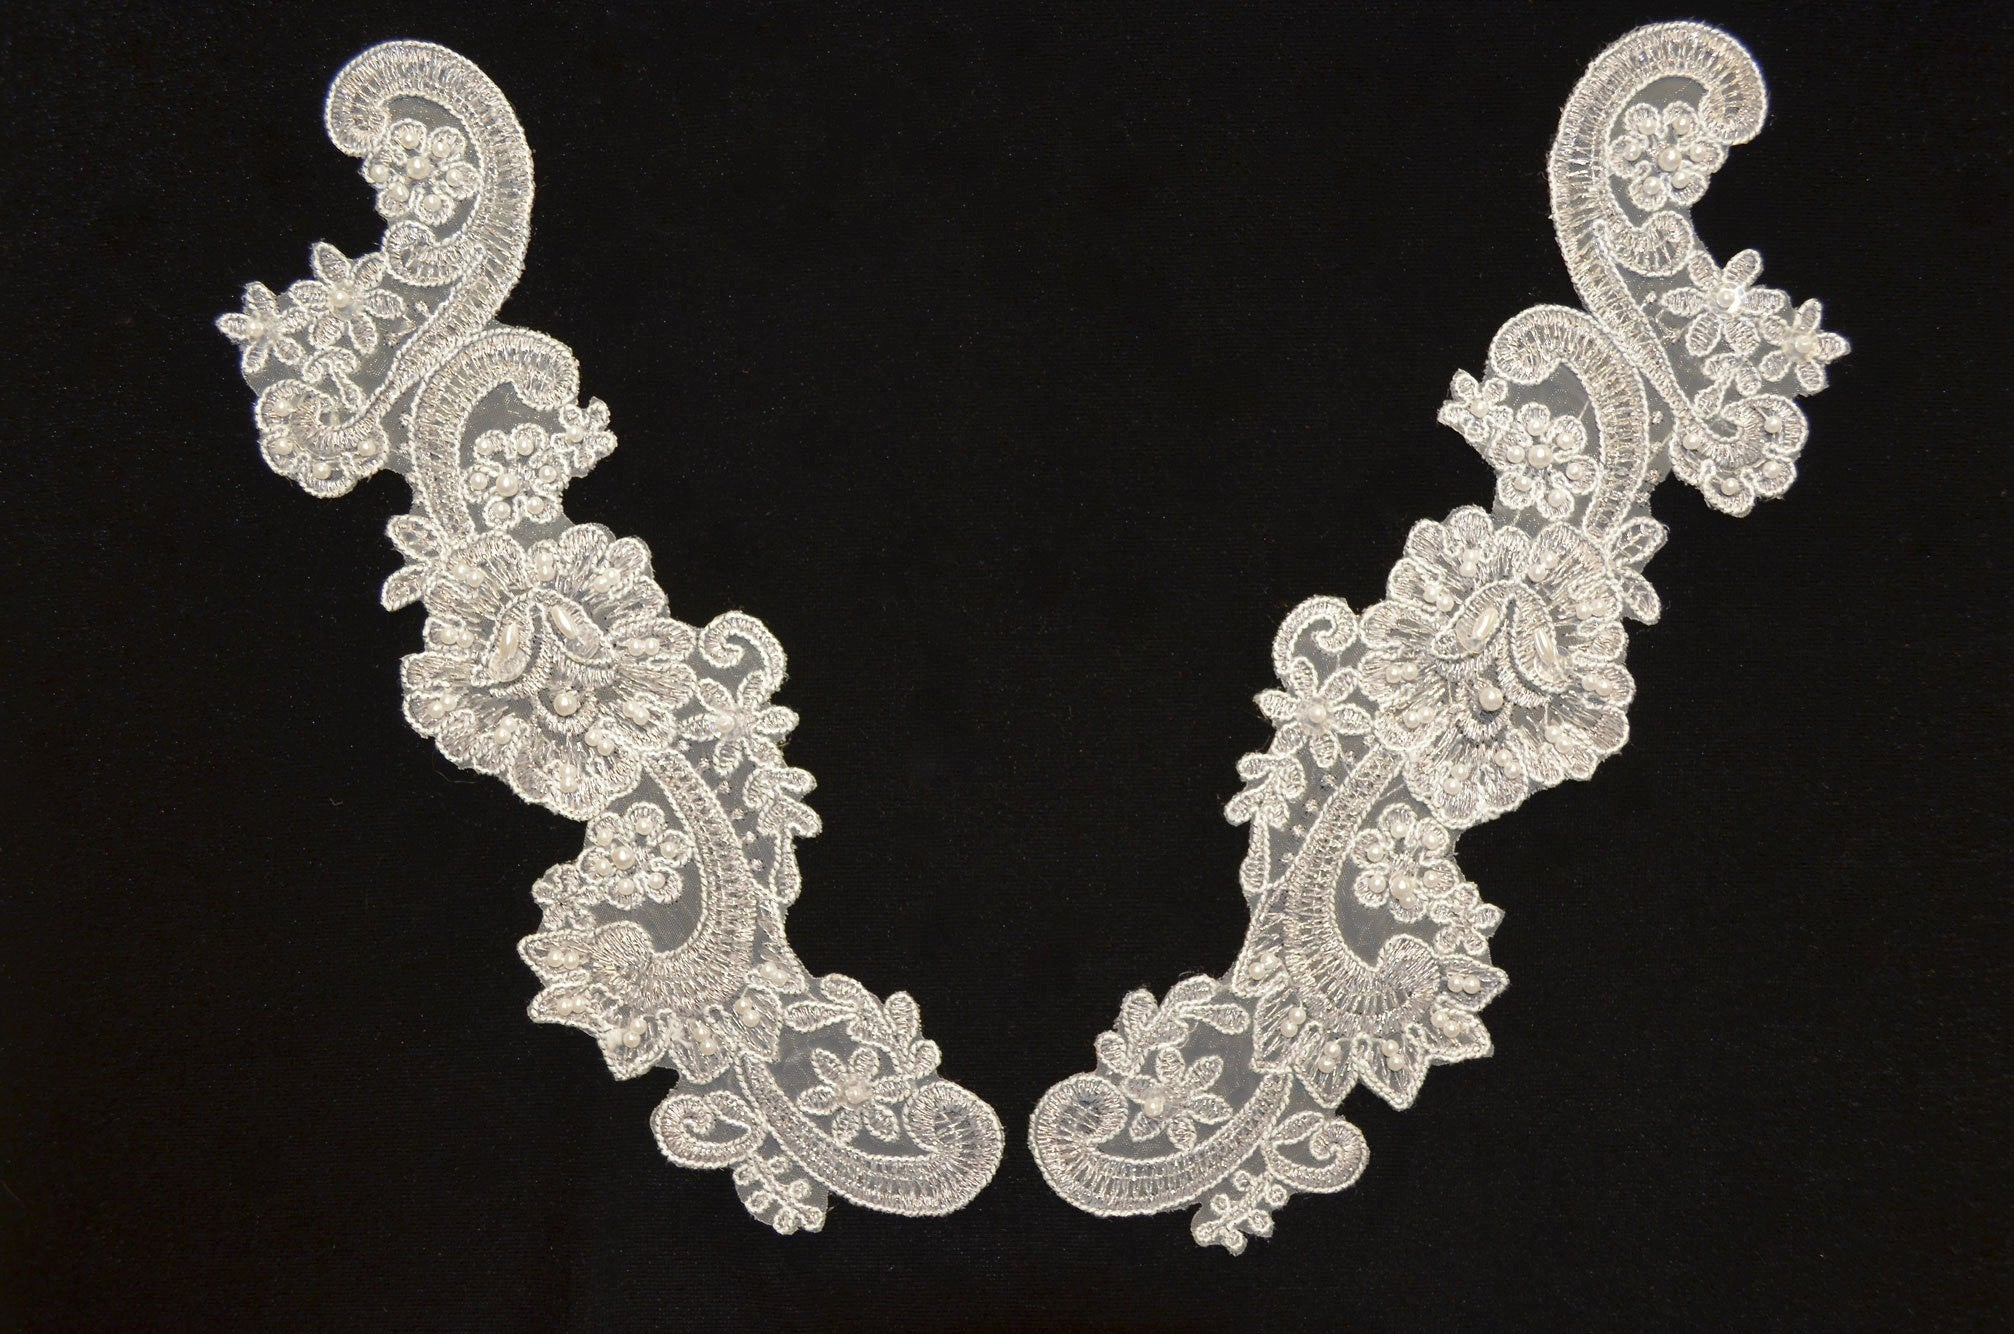 White & silver metallic pair appliqués with sequins and pearls